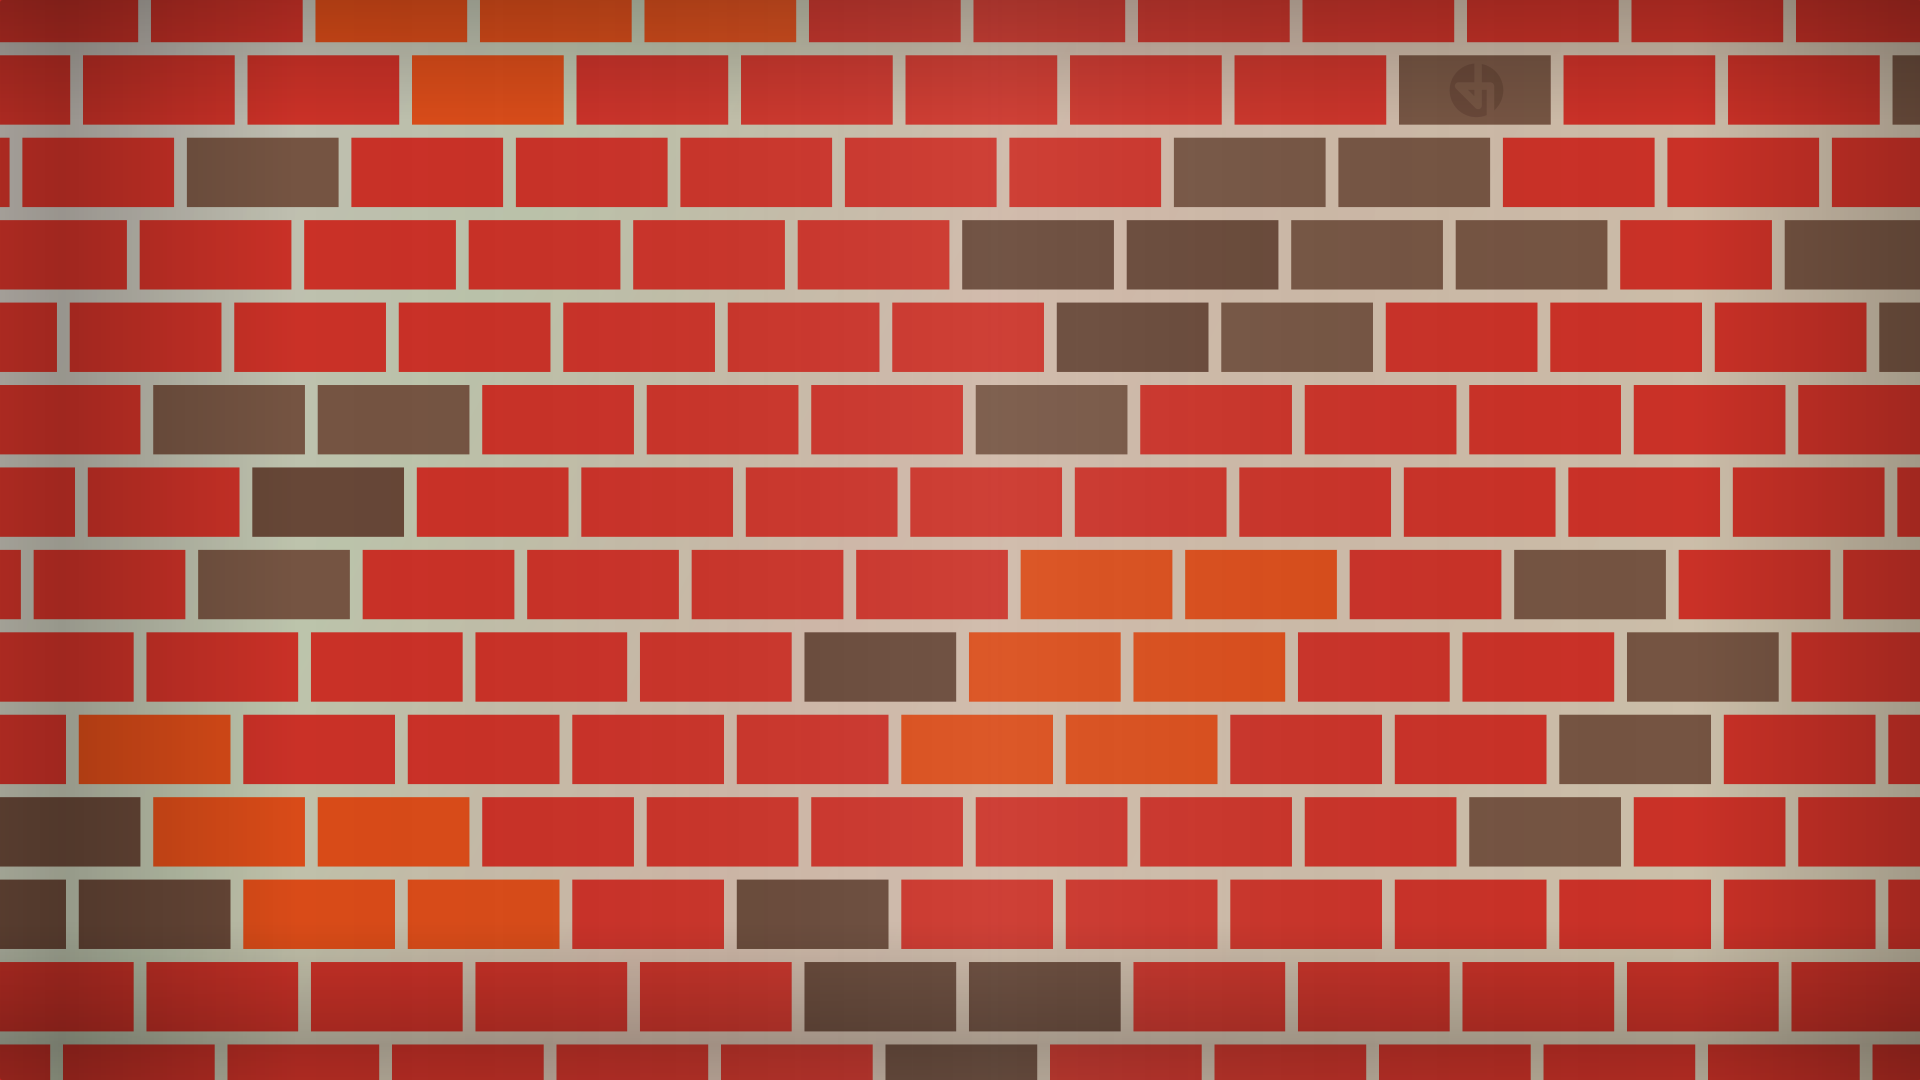 A brick wall designed in Inkscape.